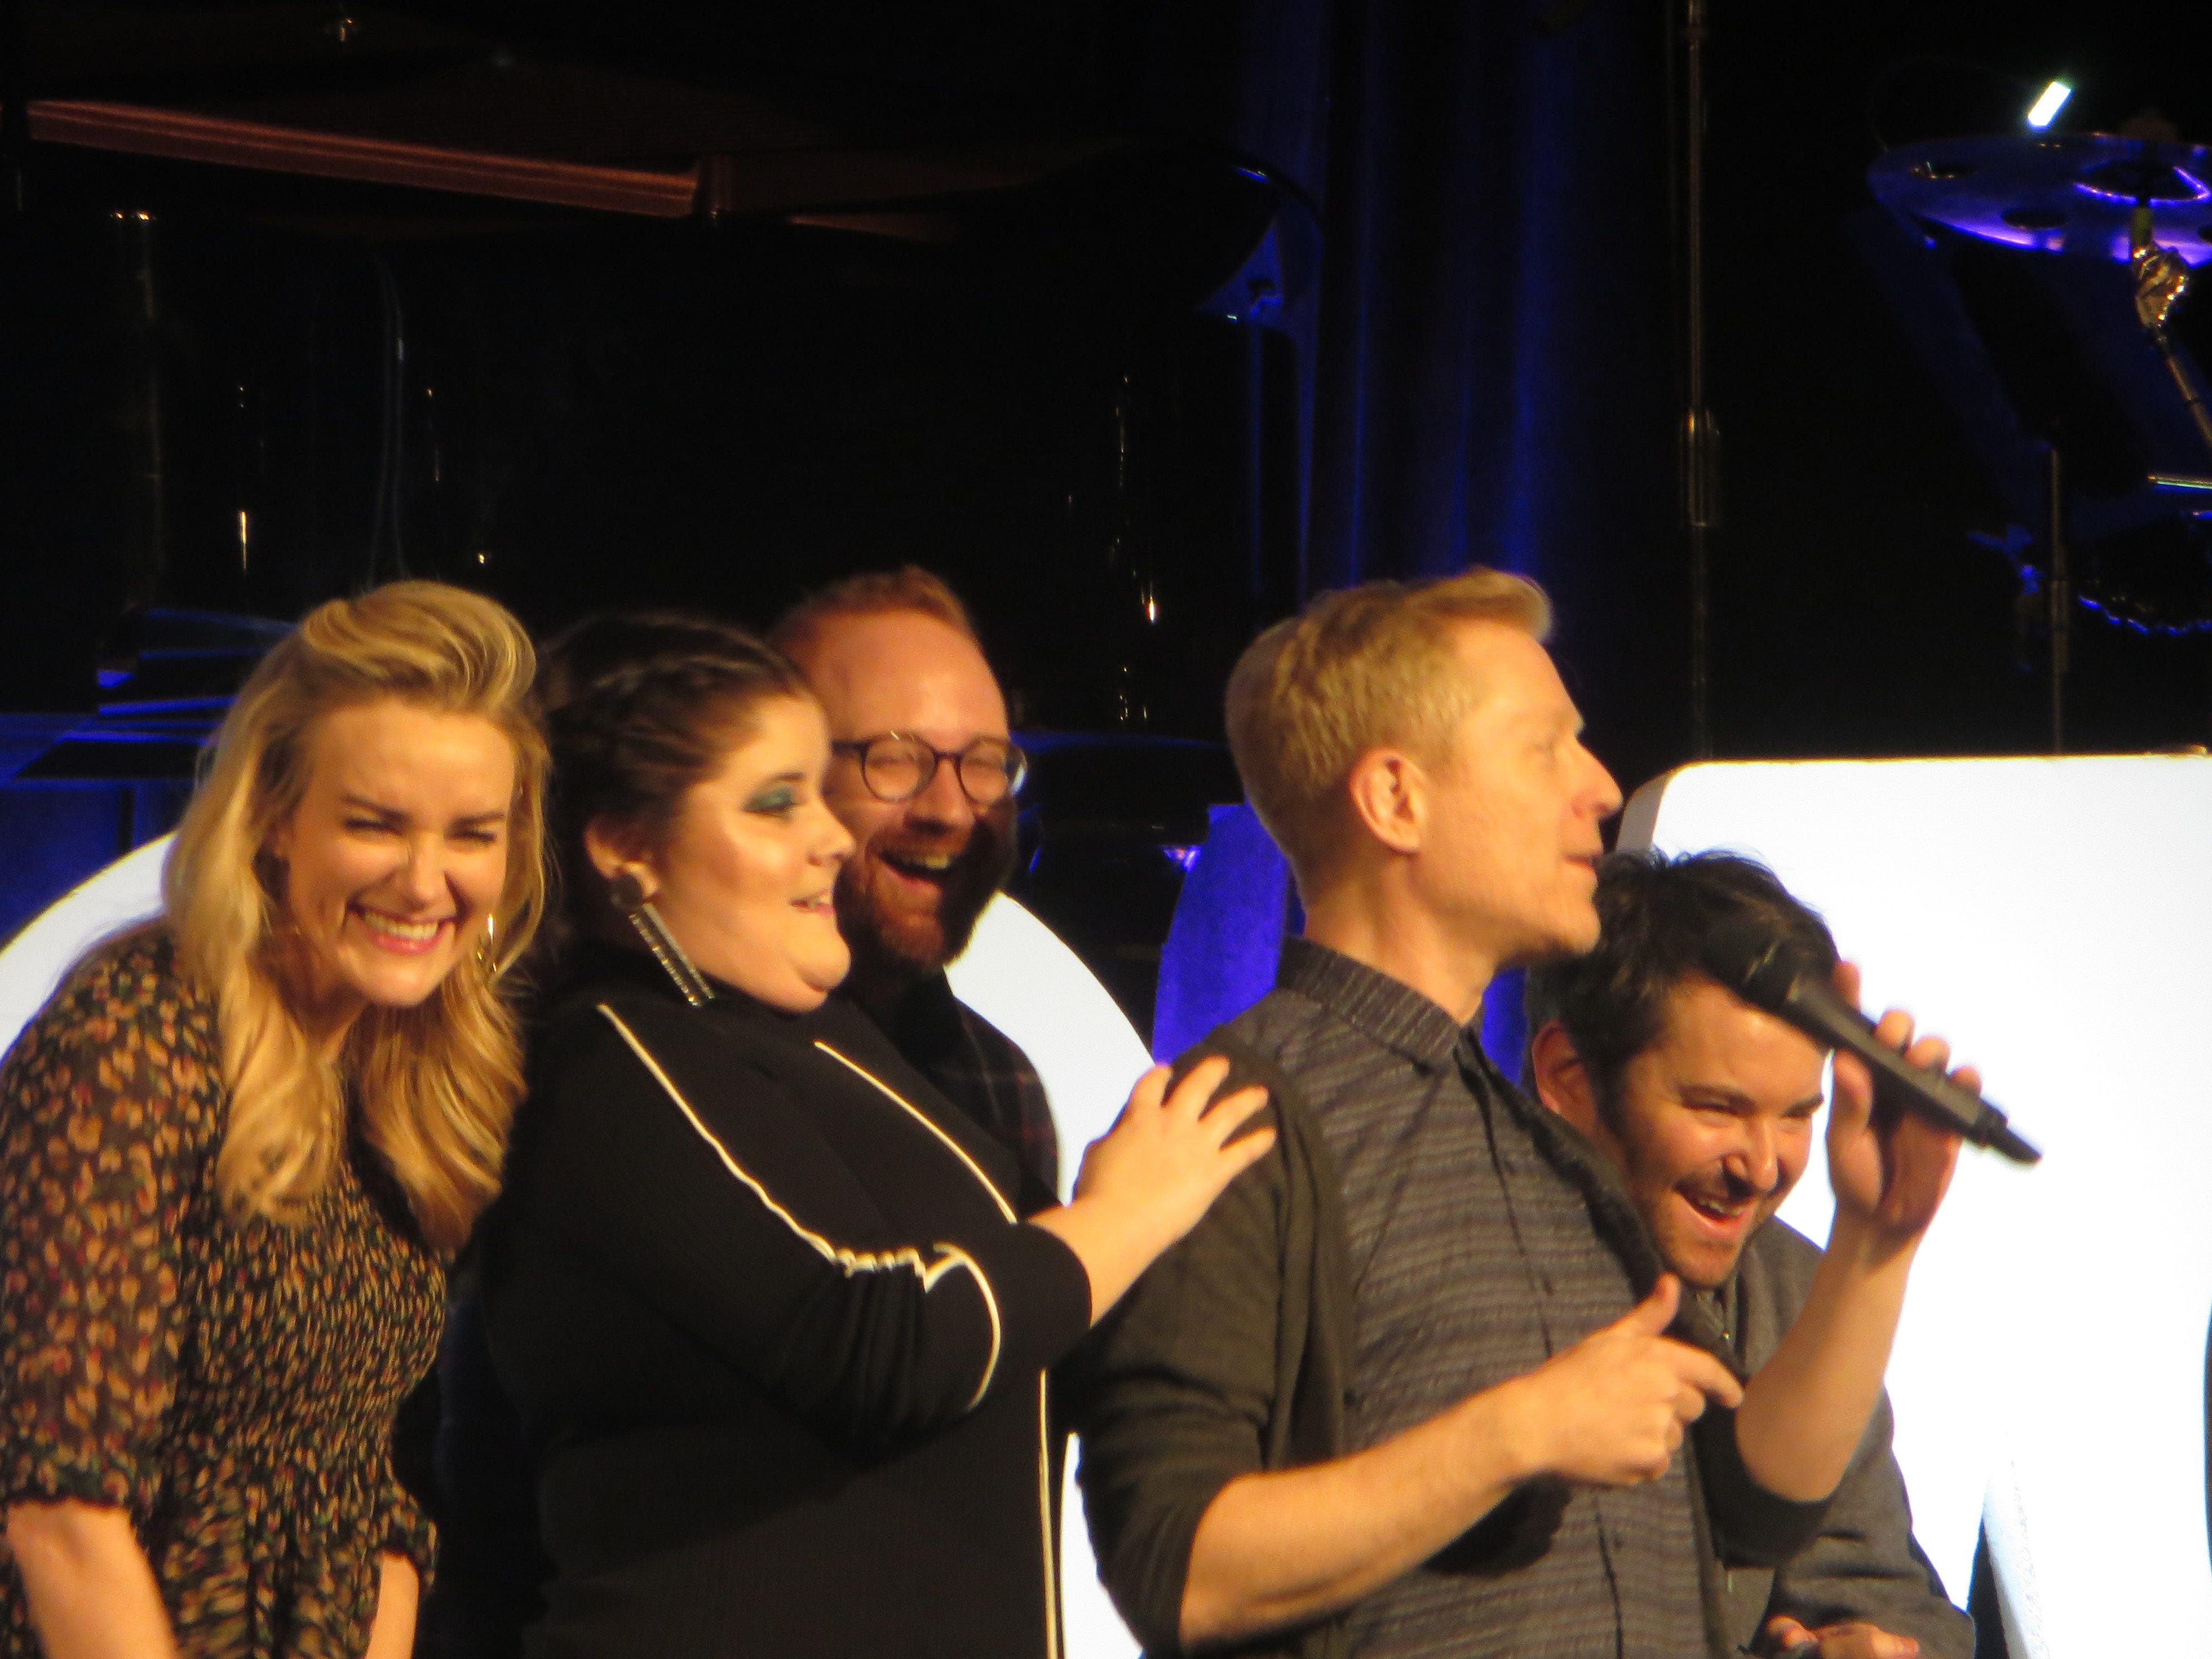 Betsy Wolfe, Ryann Redmond, David Alpert, Anthony Rapp and Alex Brightman during BroadwayCon Jukebox at BroadwayCon 2019, held Jan. 11 to 13, 2019, at the New York Hilton Midtown in Manhattan.